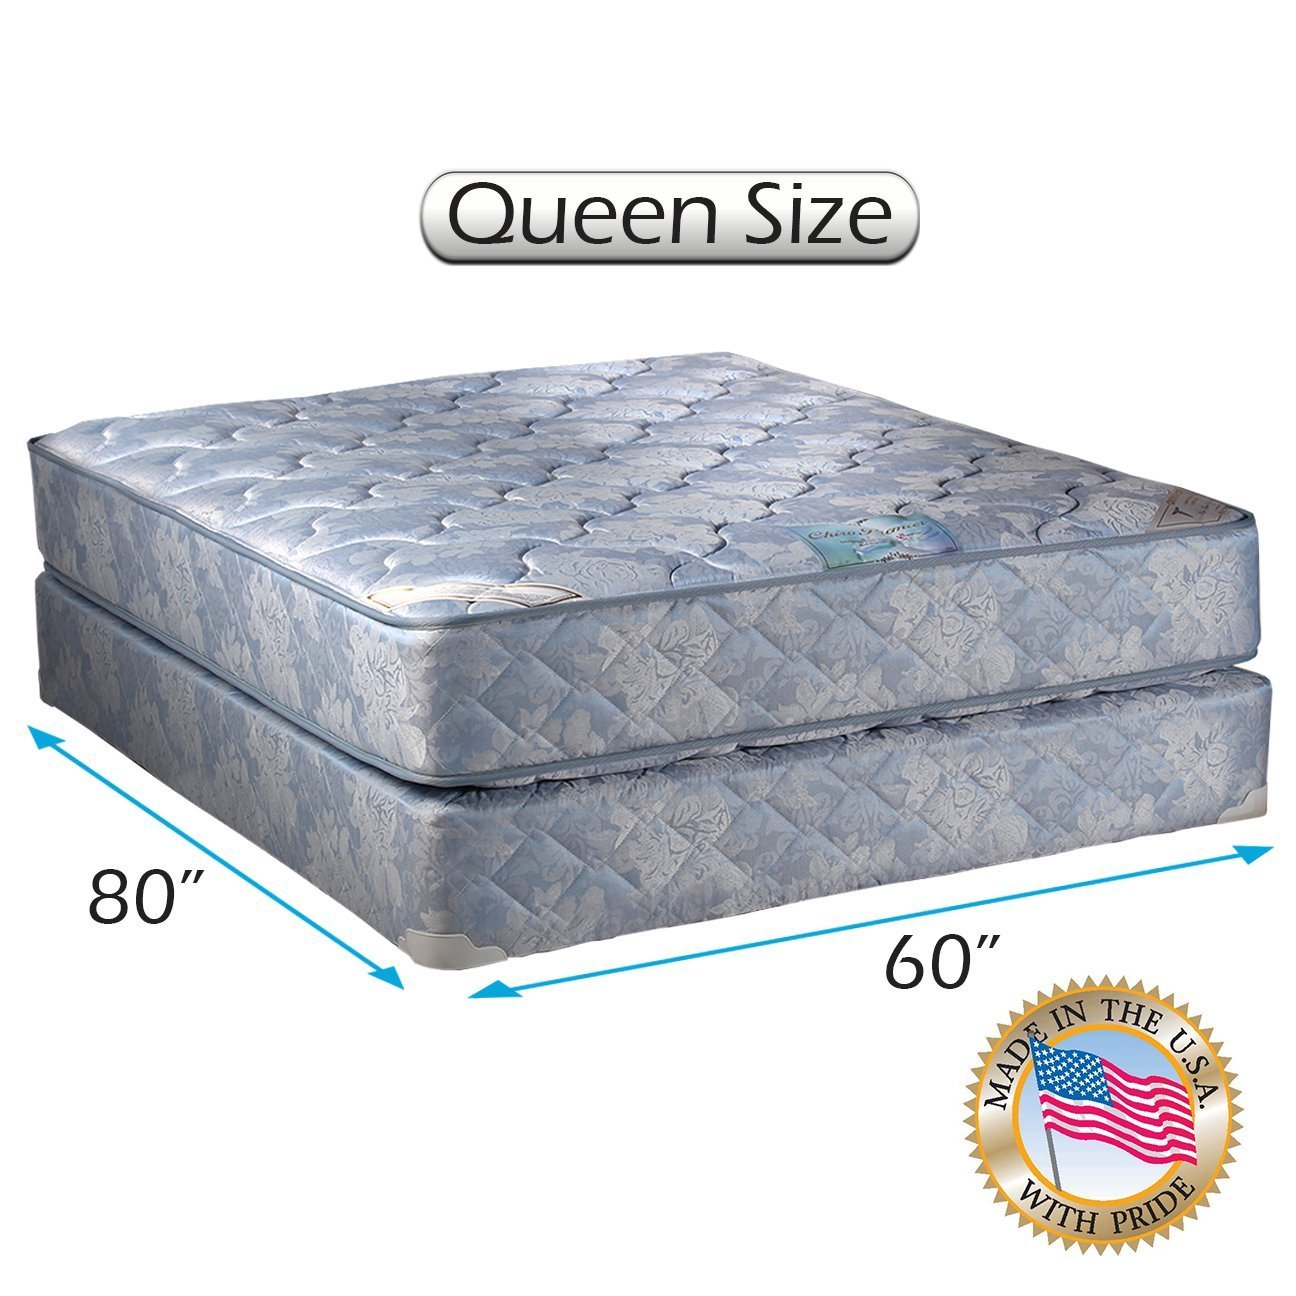 Amazon.com: Dream Solutions USA Chiro Premier Orthopedic (Blue Color) Queen Size (60